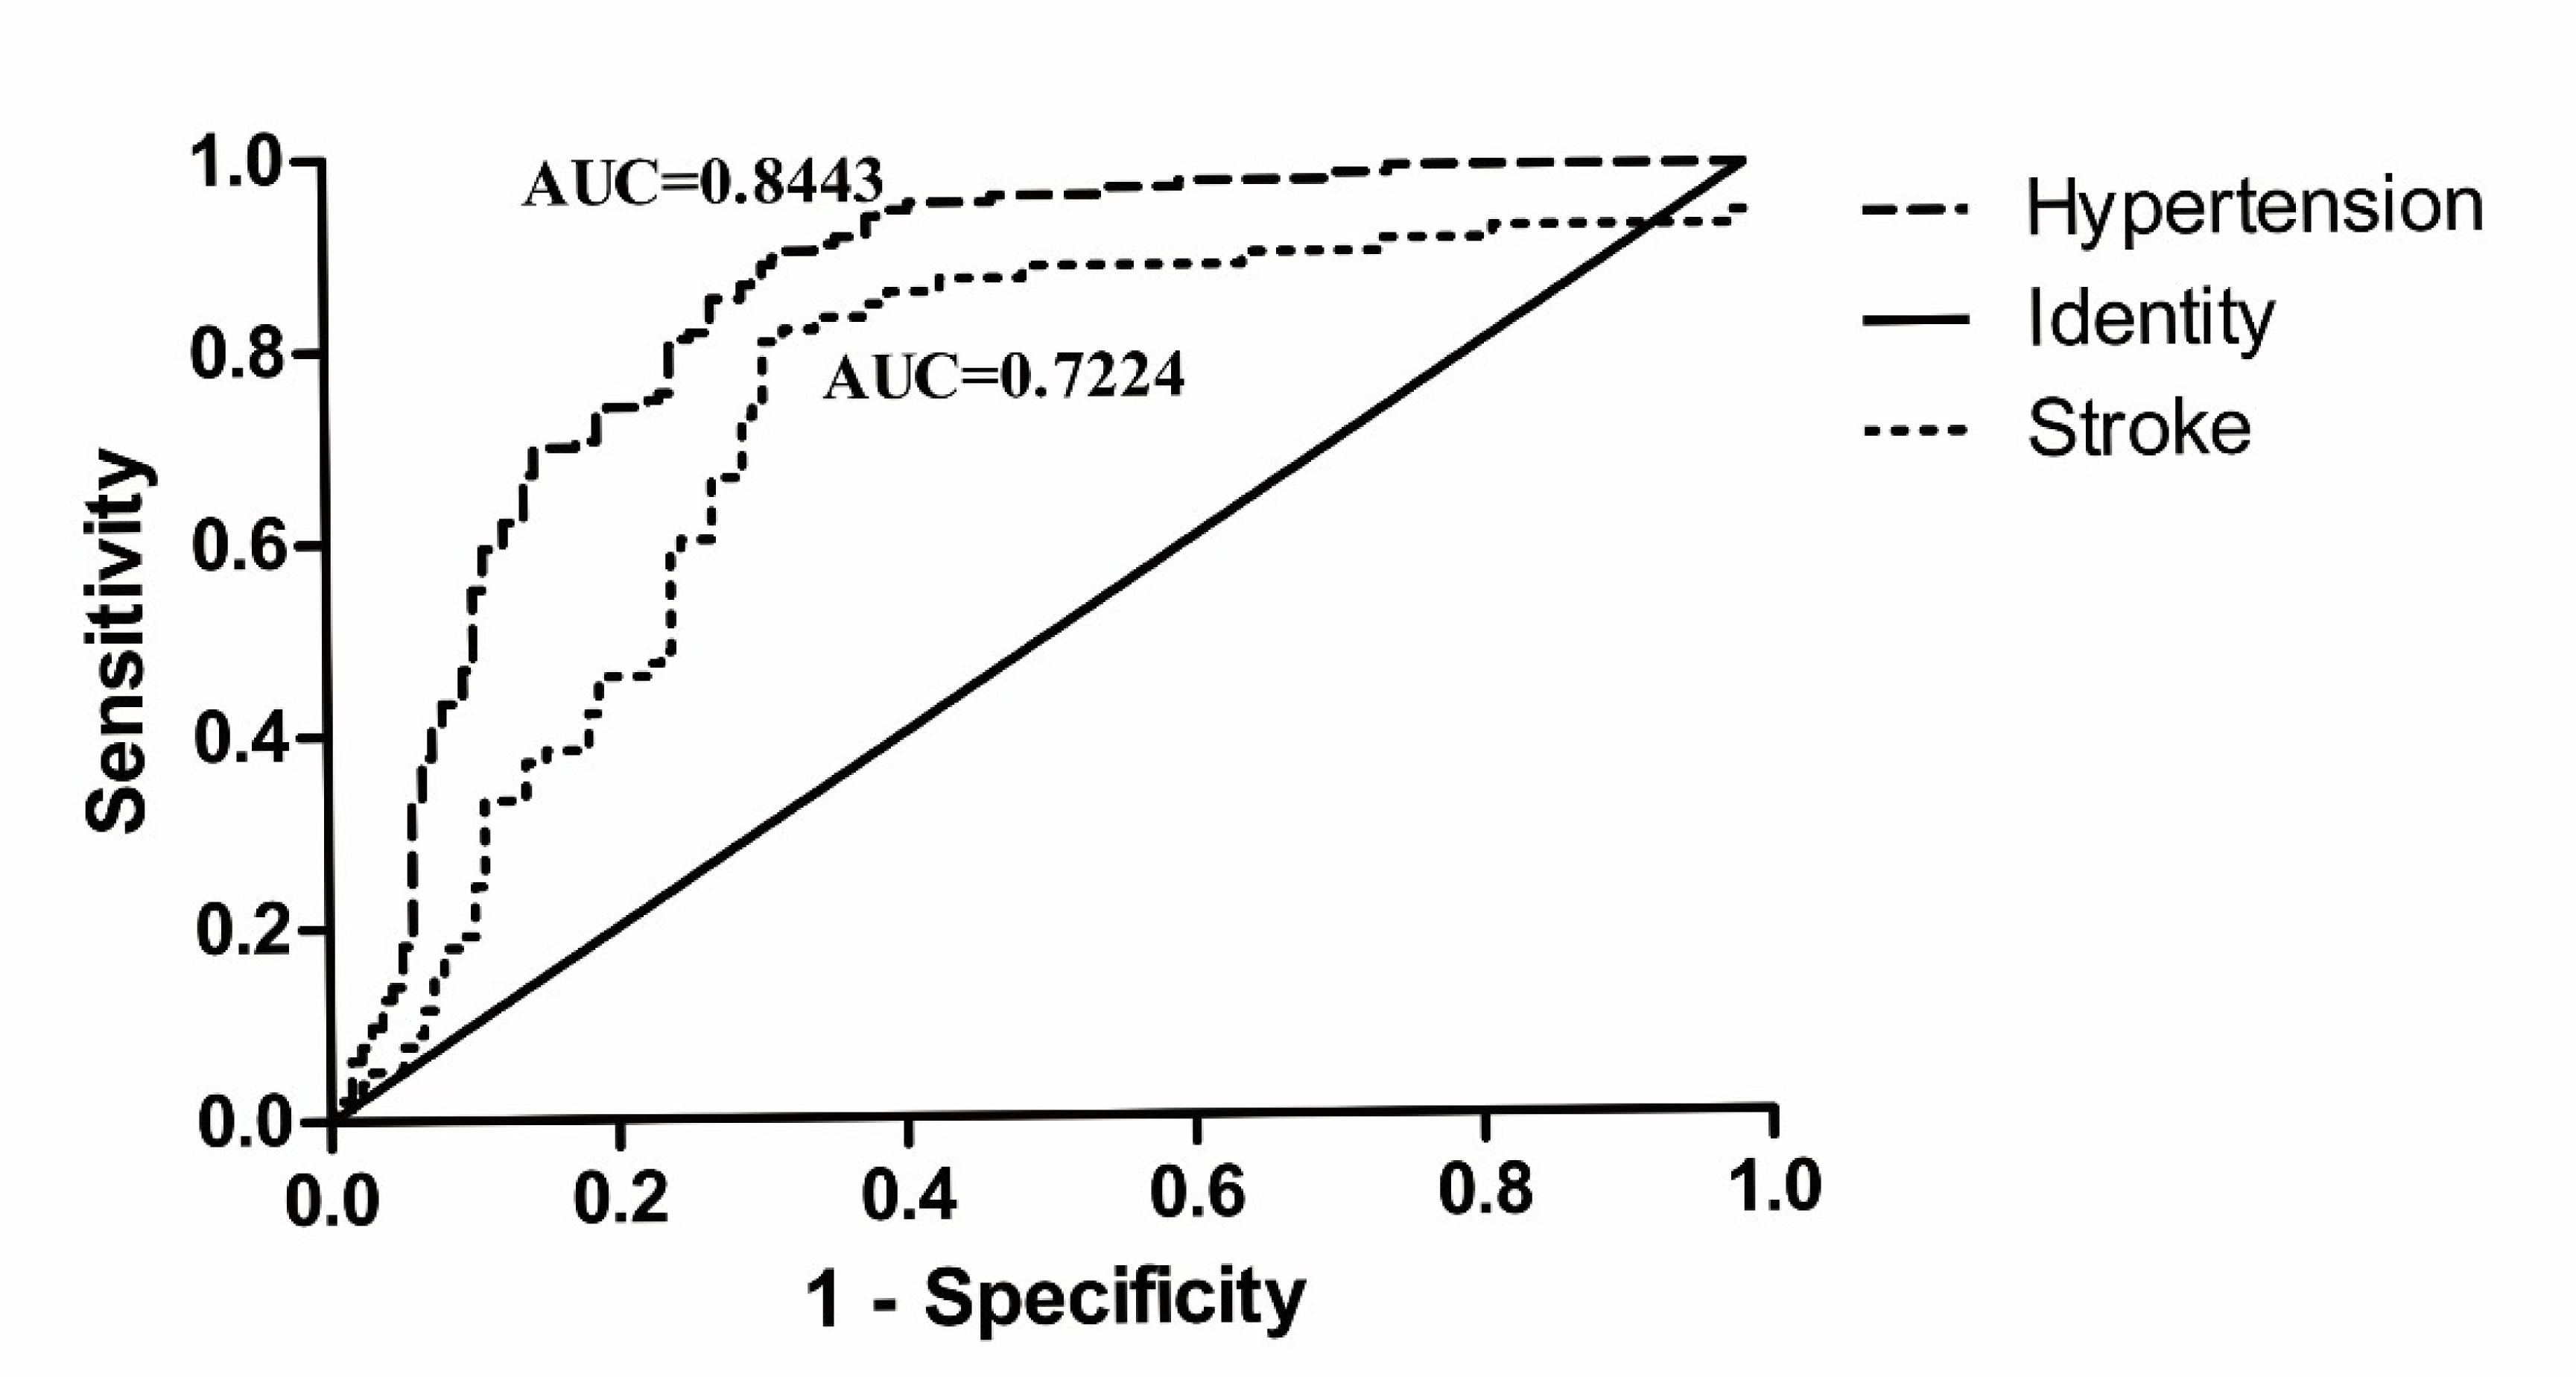 Receiver operating characteristic (ROC) curve of CBS methylation in male hypertensive and stroke patients.